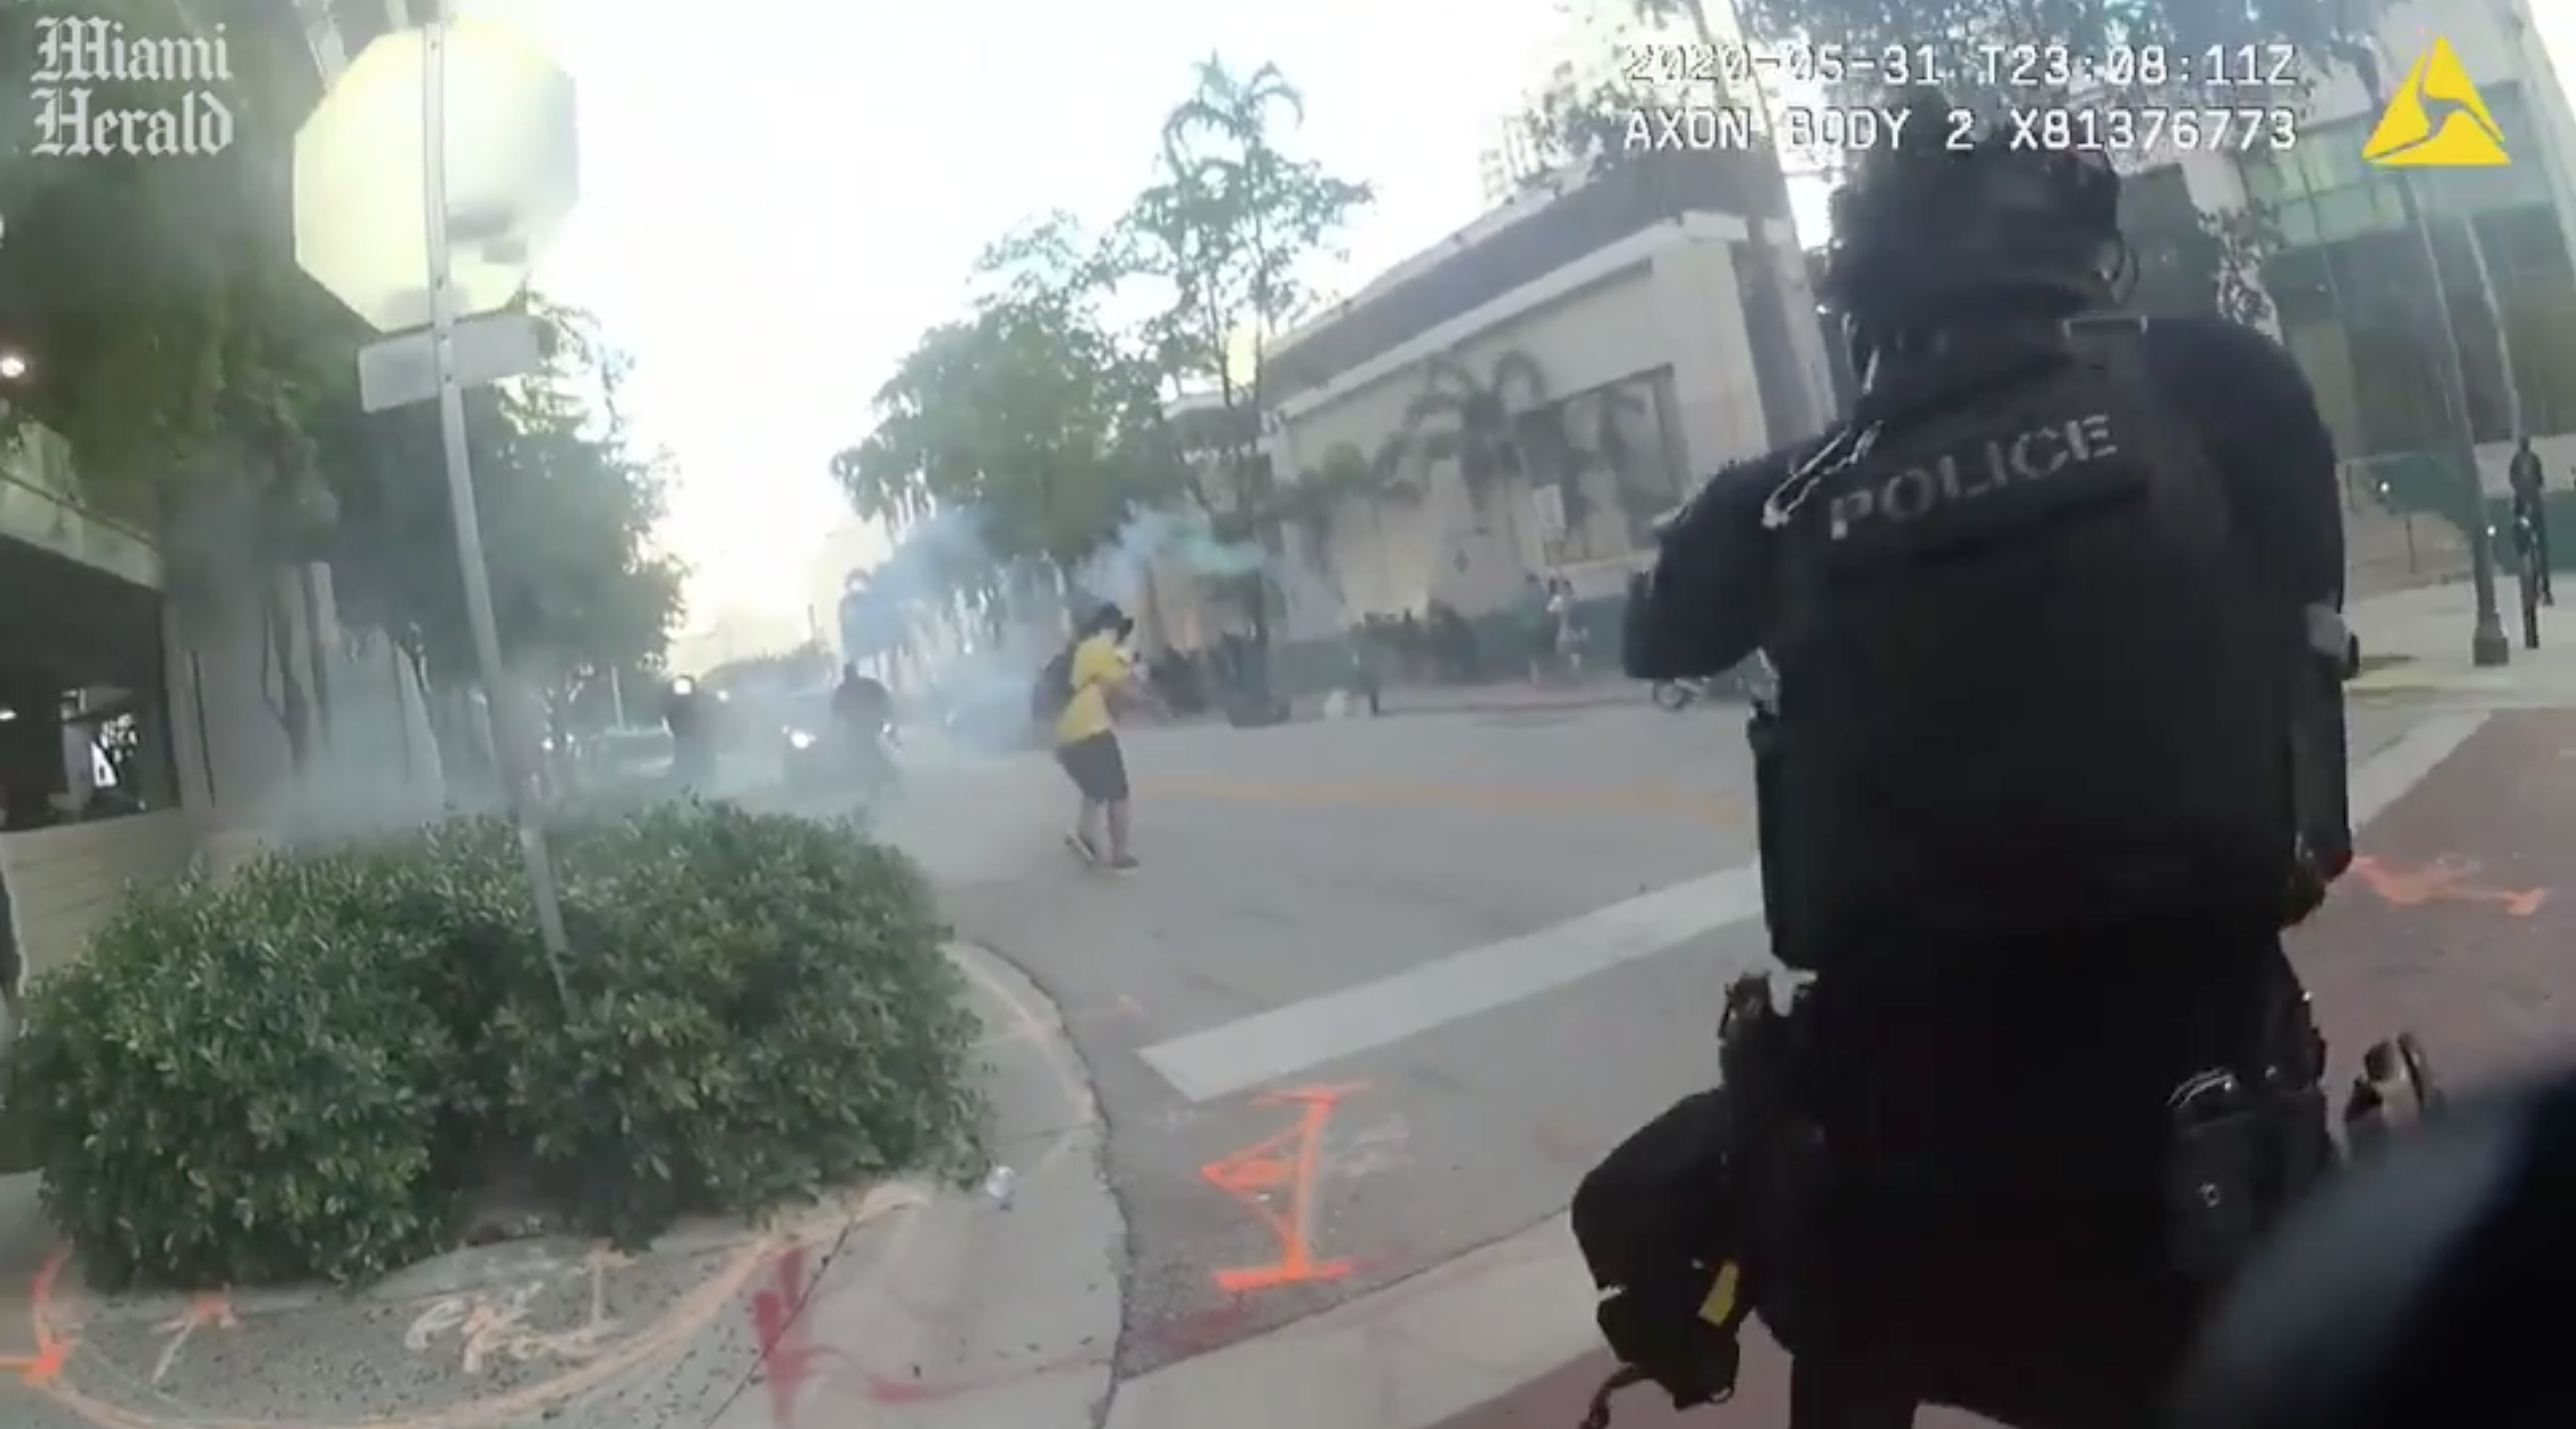 A Fort Lauderdale police officer firing rubber bullets at a protester in body cam footage obtained by the Miami Herald. (Photo: Miami Herald/Screenshot)